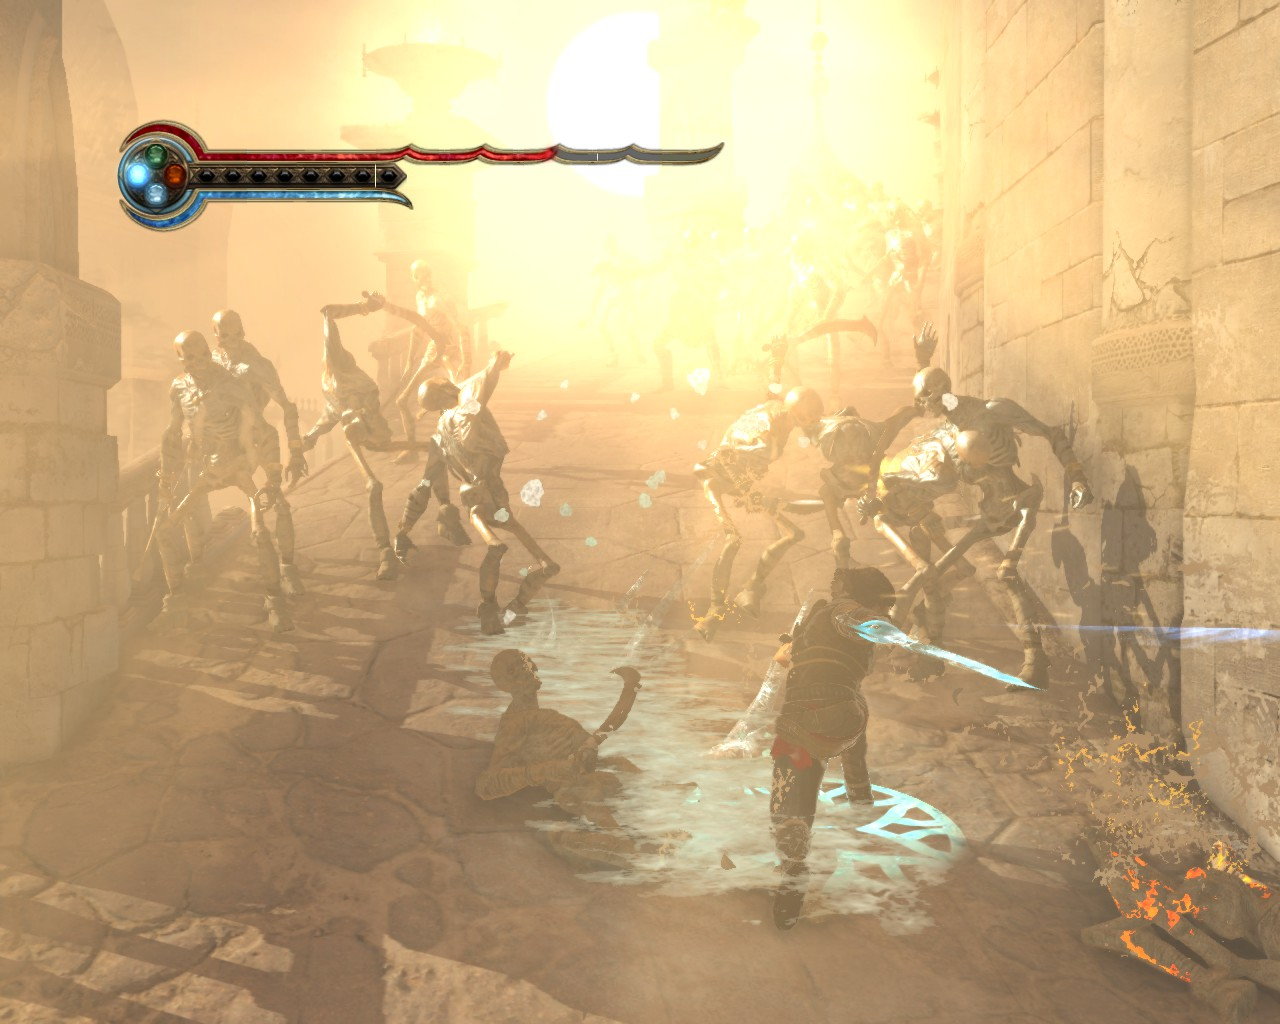 Prince of Persia 2014-06-04 20-15-27-26.jpg - Prince of Persia: The Forgotten Sands